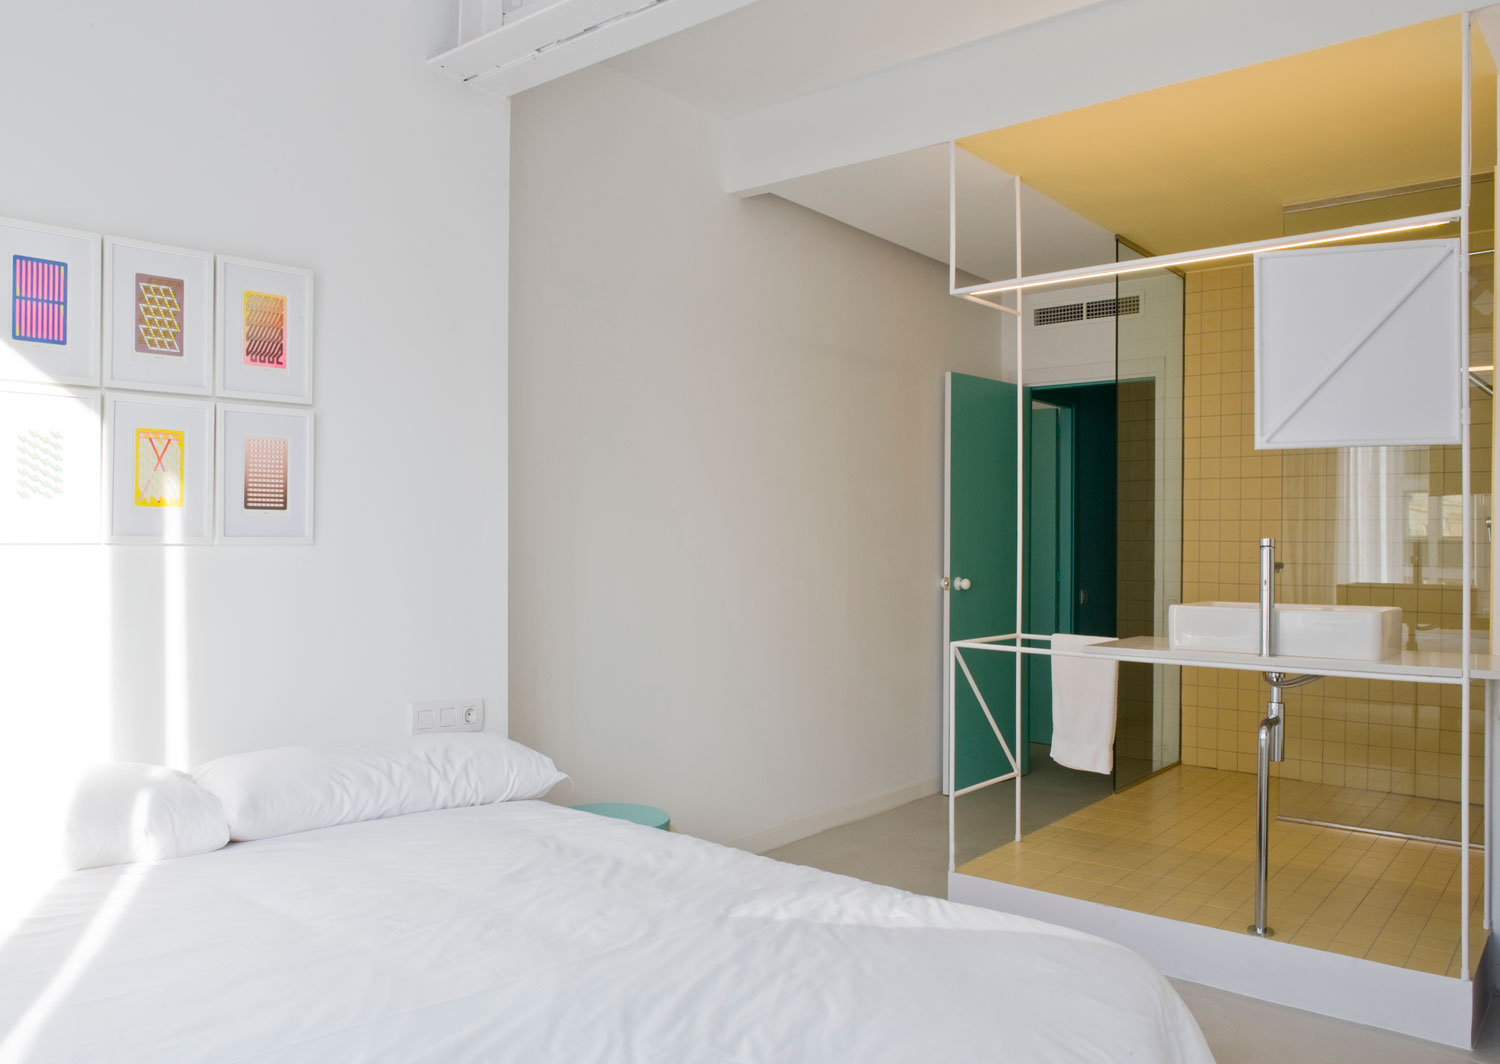 Barcelona Holiday Apartment By Colombo And Serboli